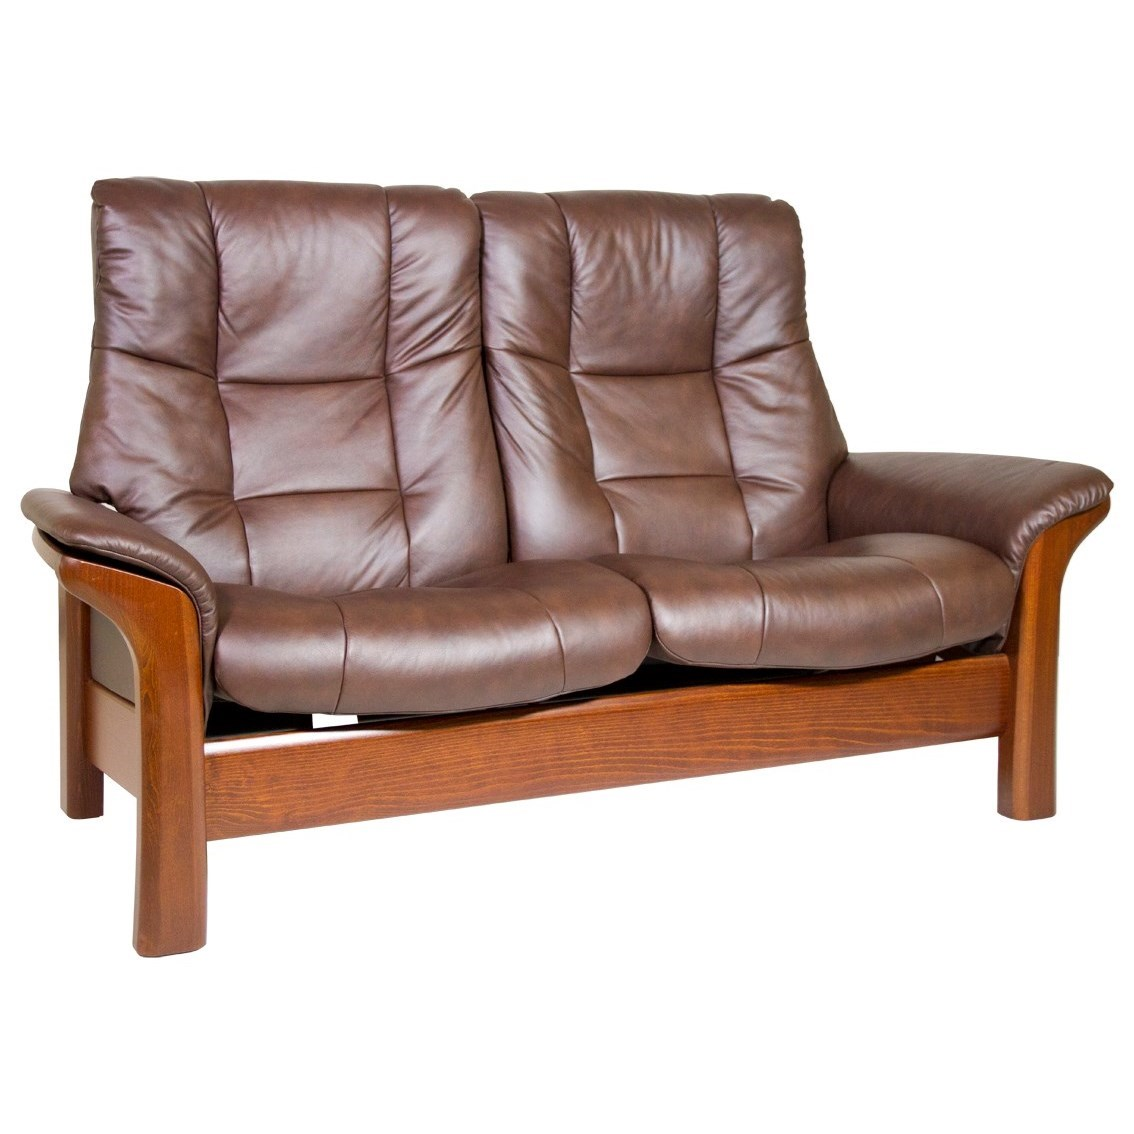 Ekornes Stressless Buckingham Sofa Stressless Buckingham Reclining Loveseat Homeworld